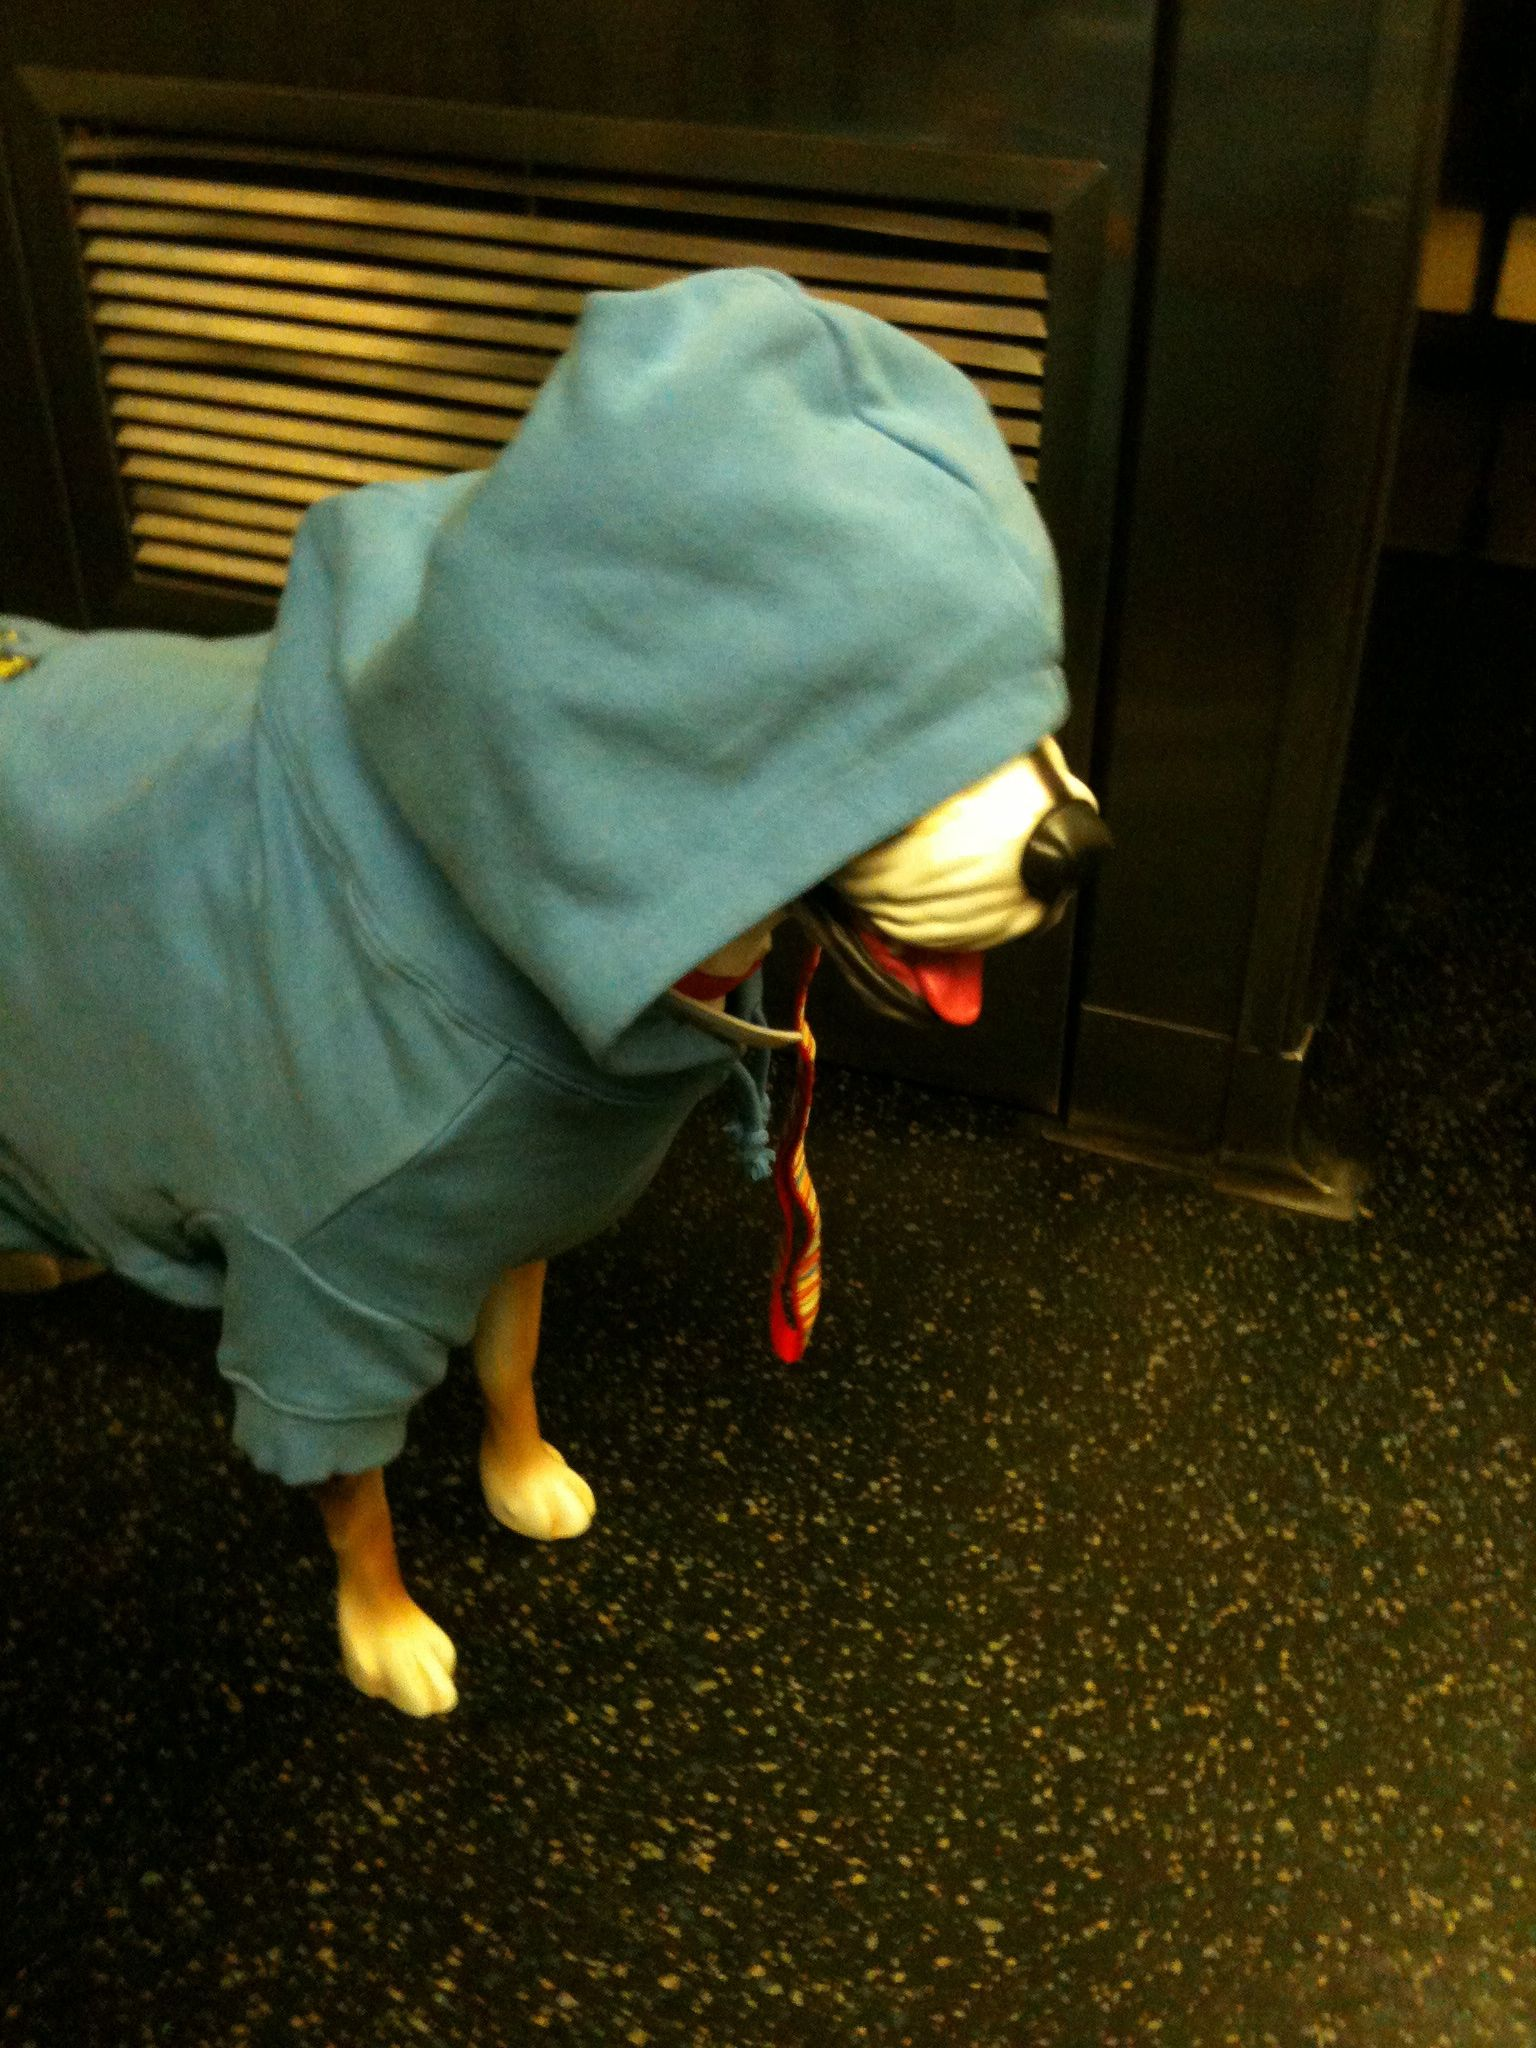 The dog I saw on the subway